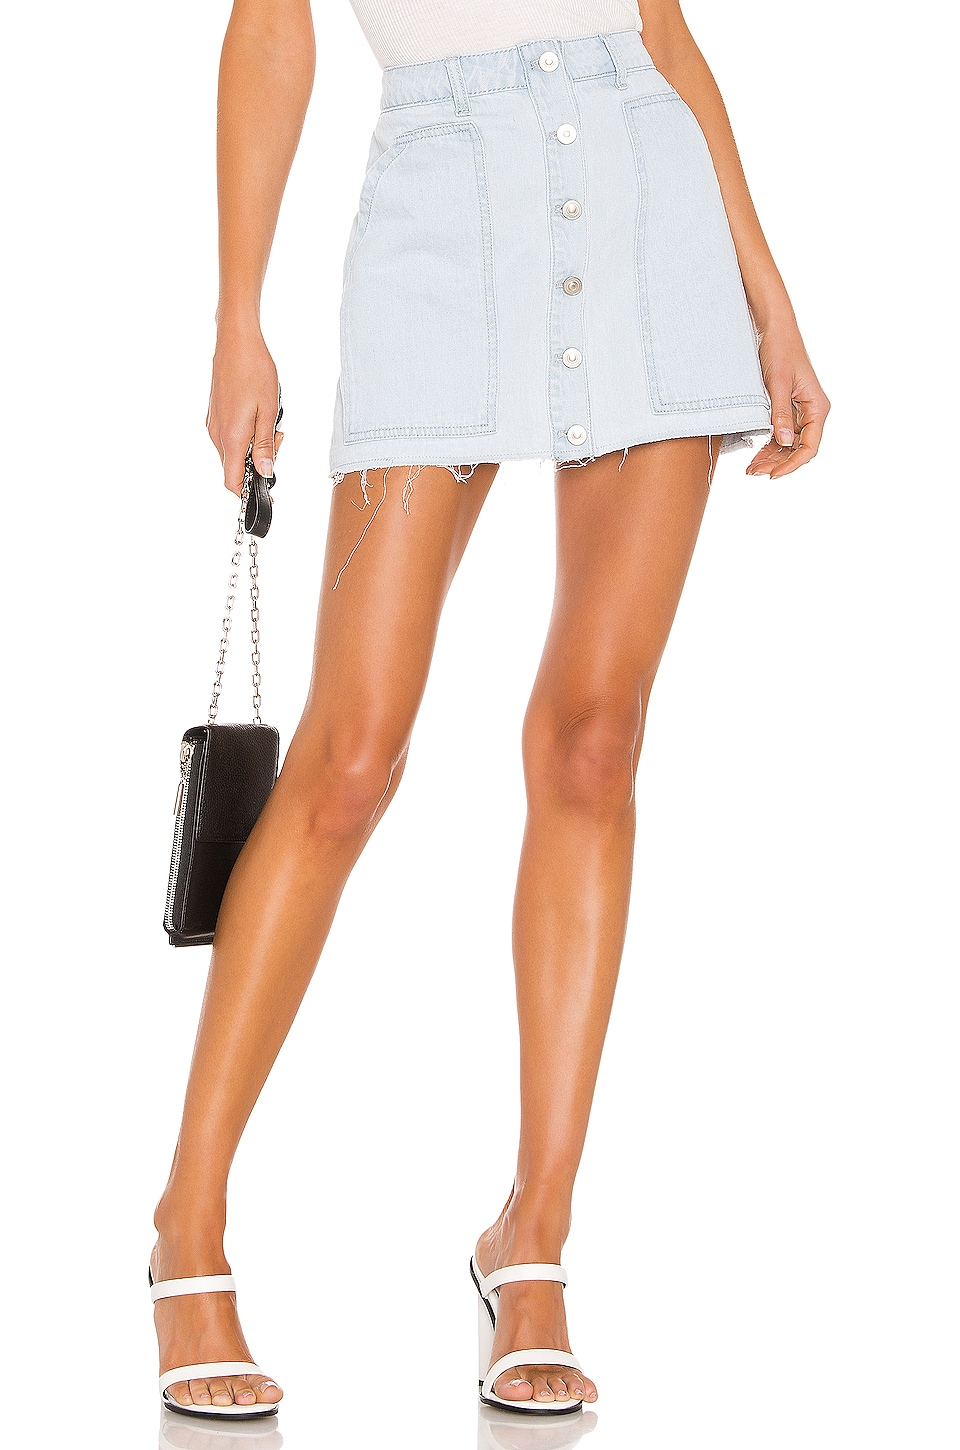 KENDALL + KYLIE Fashion Denim Mini Skirt in Powder Blue Wash